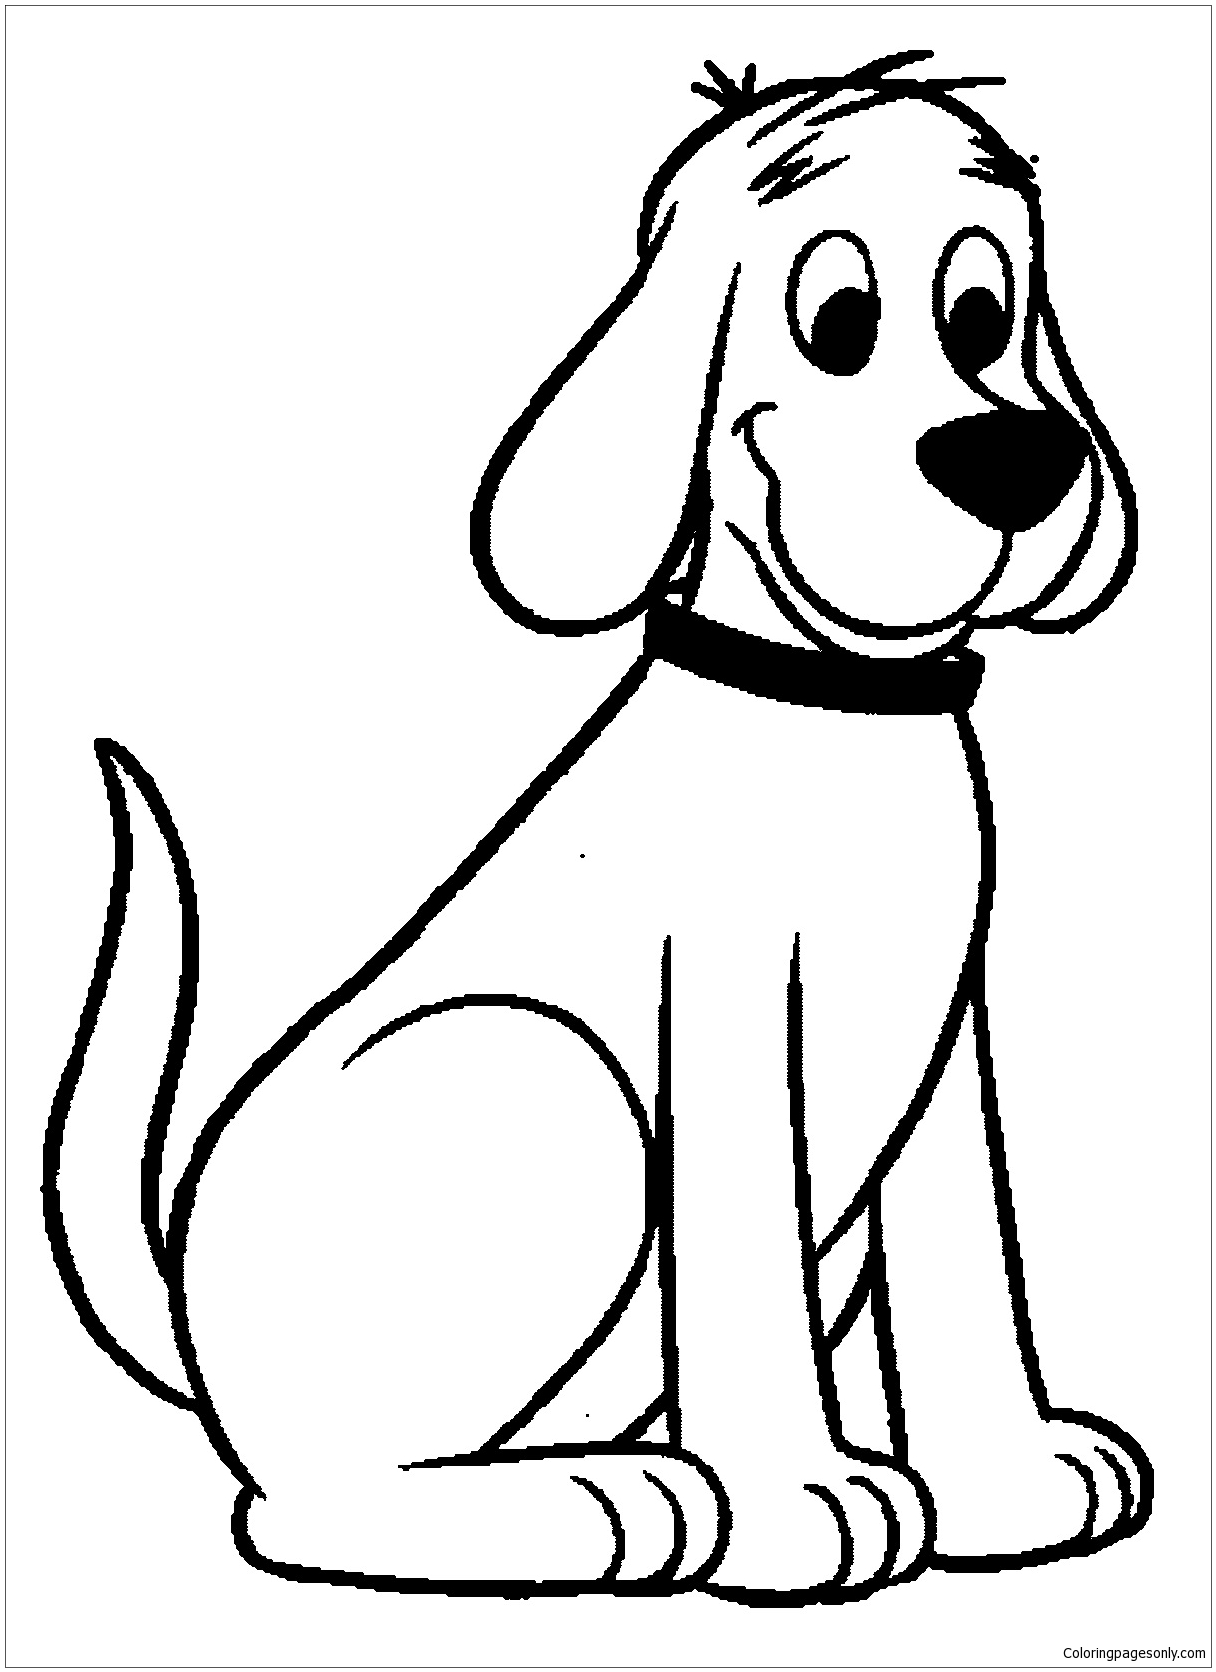 Clifford The Big Red Dog Coloring Page Free Coloring